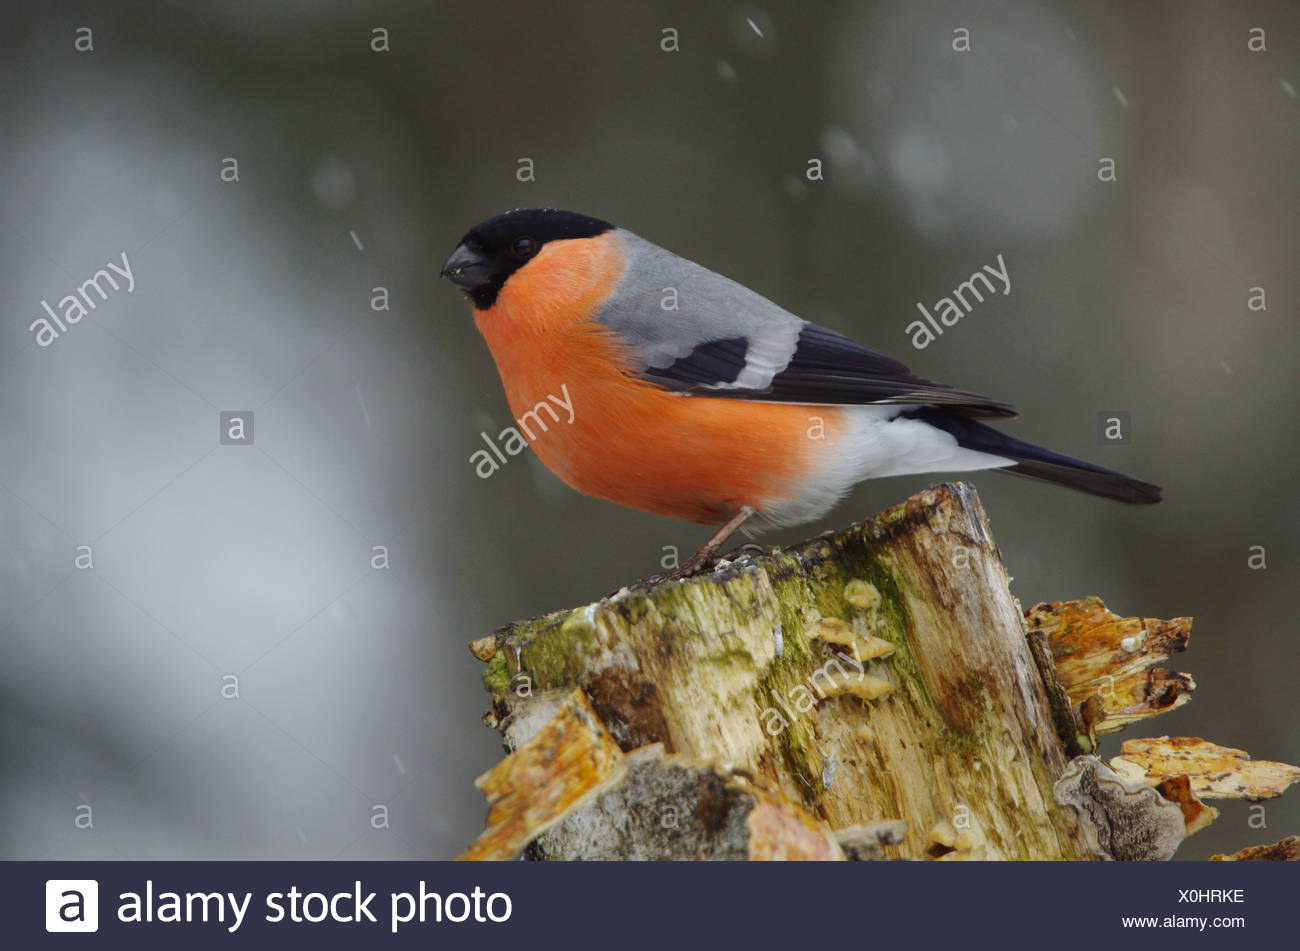 Europe, Sweden, Hamra, animals, bird, passerine bird, finch, bullfinch, Pyrrhula pyrrhula, stump - Stock Image